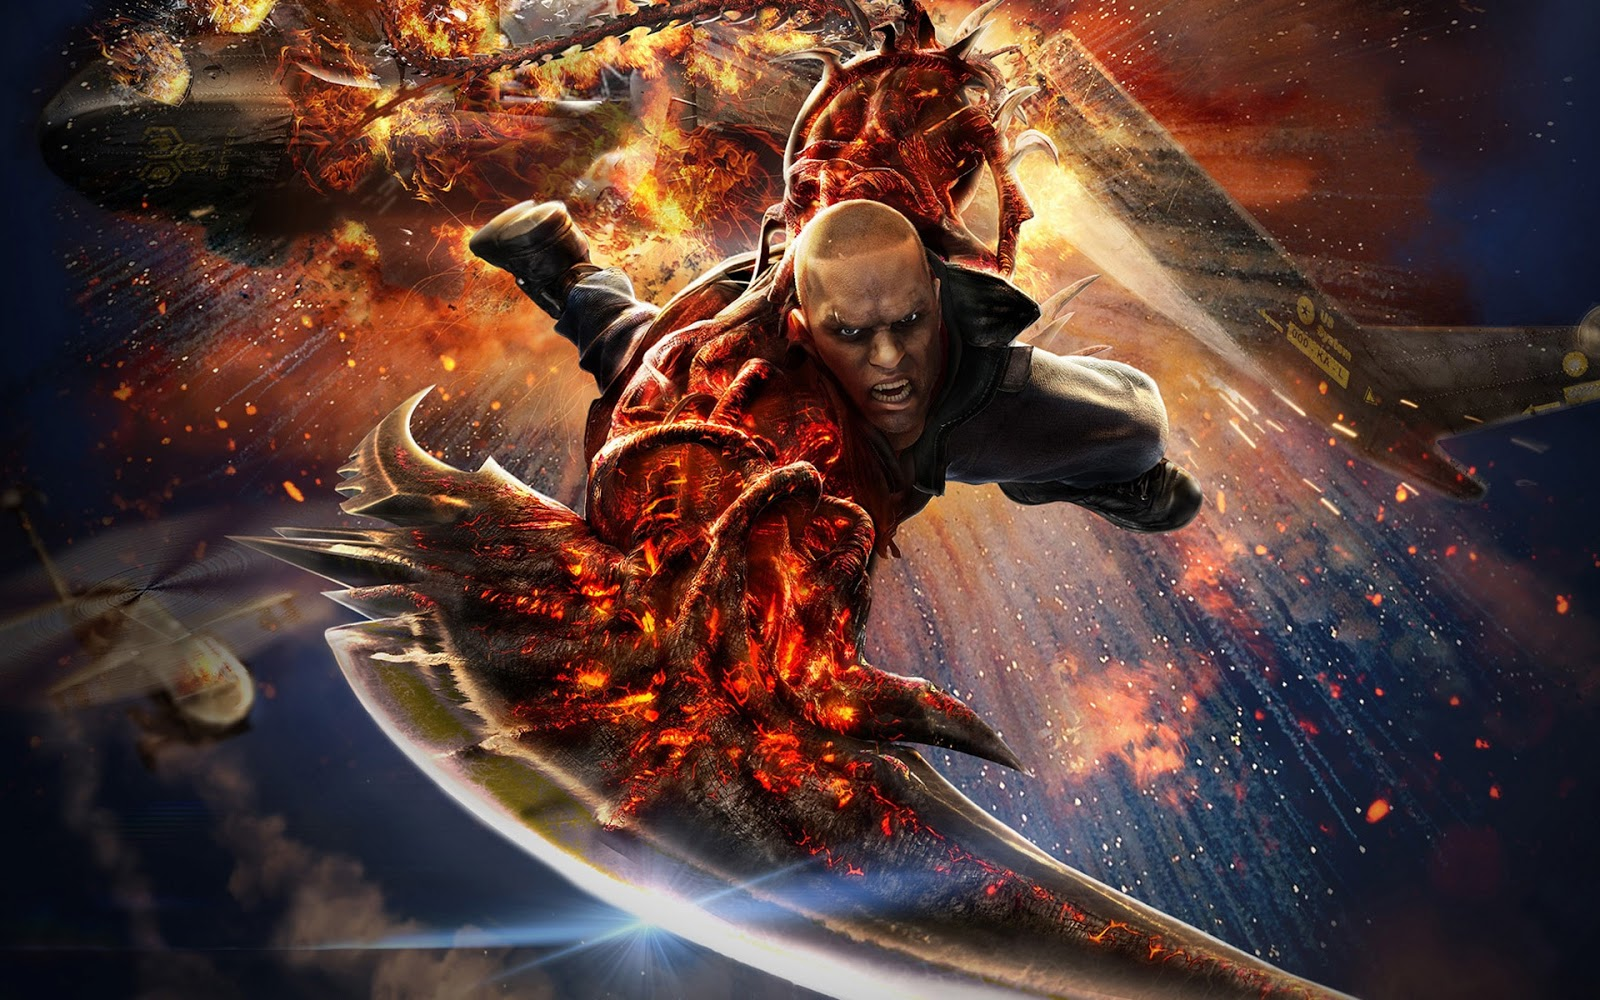 Prototype 2 Wallpapers Hd: Free Download Prototype 2 PC Game Full Version